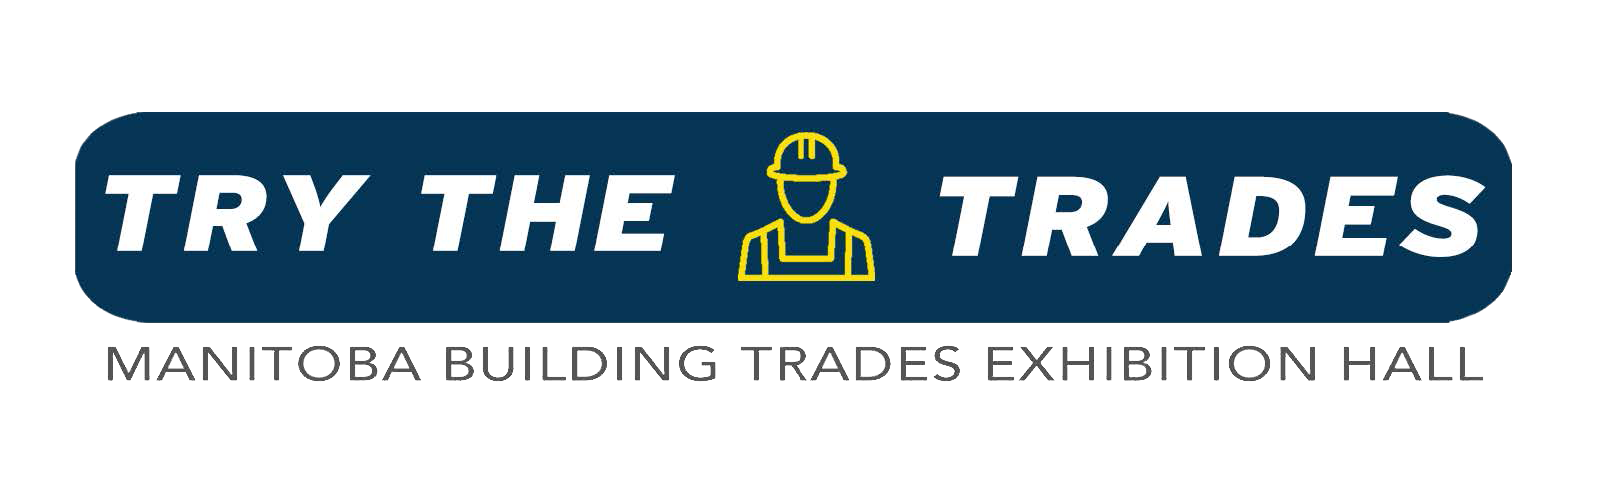 Try The Trades - Manitoba Building Trades Exhibition Hall